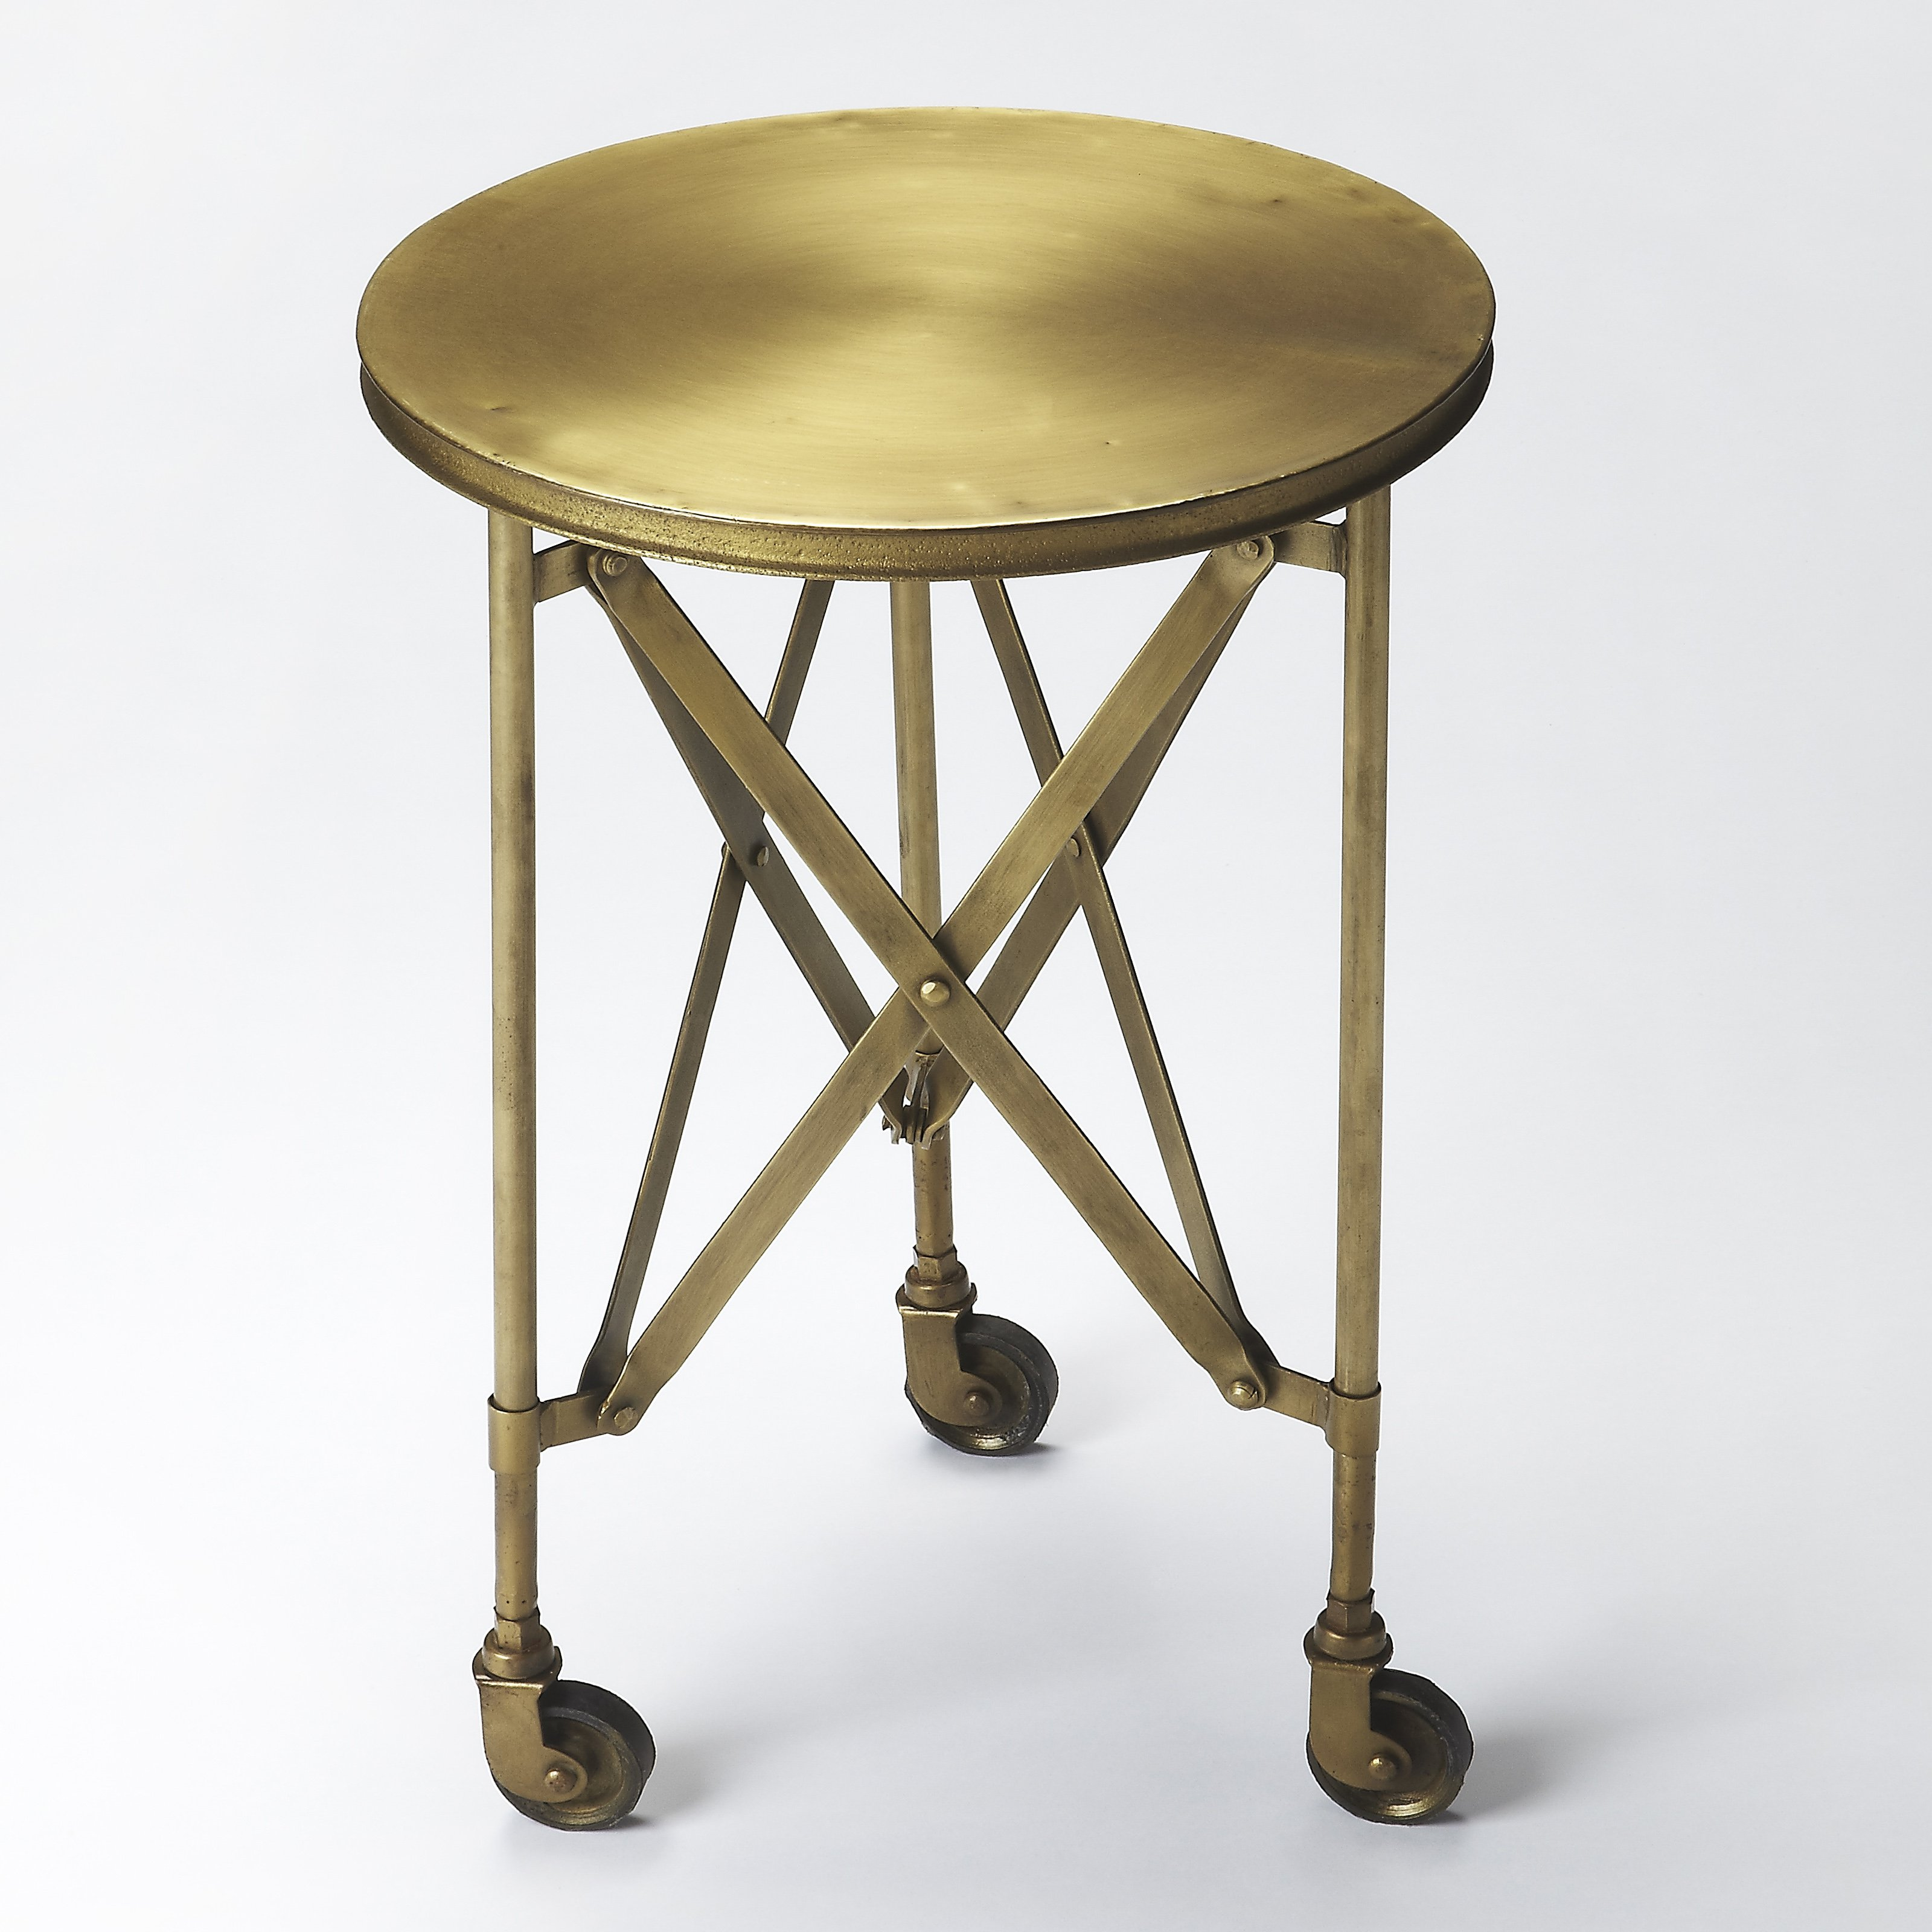 butler specialty industrial chic igan side table end elephant accent studded dining chairs corner ikea distressed tables polka dot tablecloth safavieh glass coffee round nautical